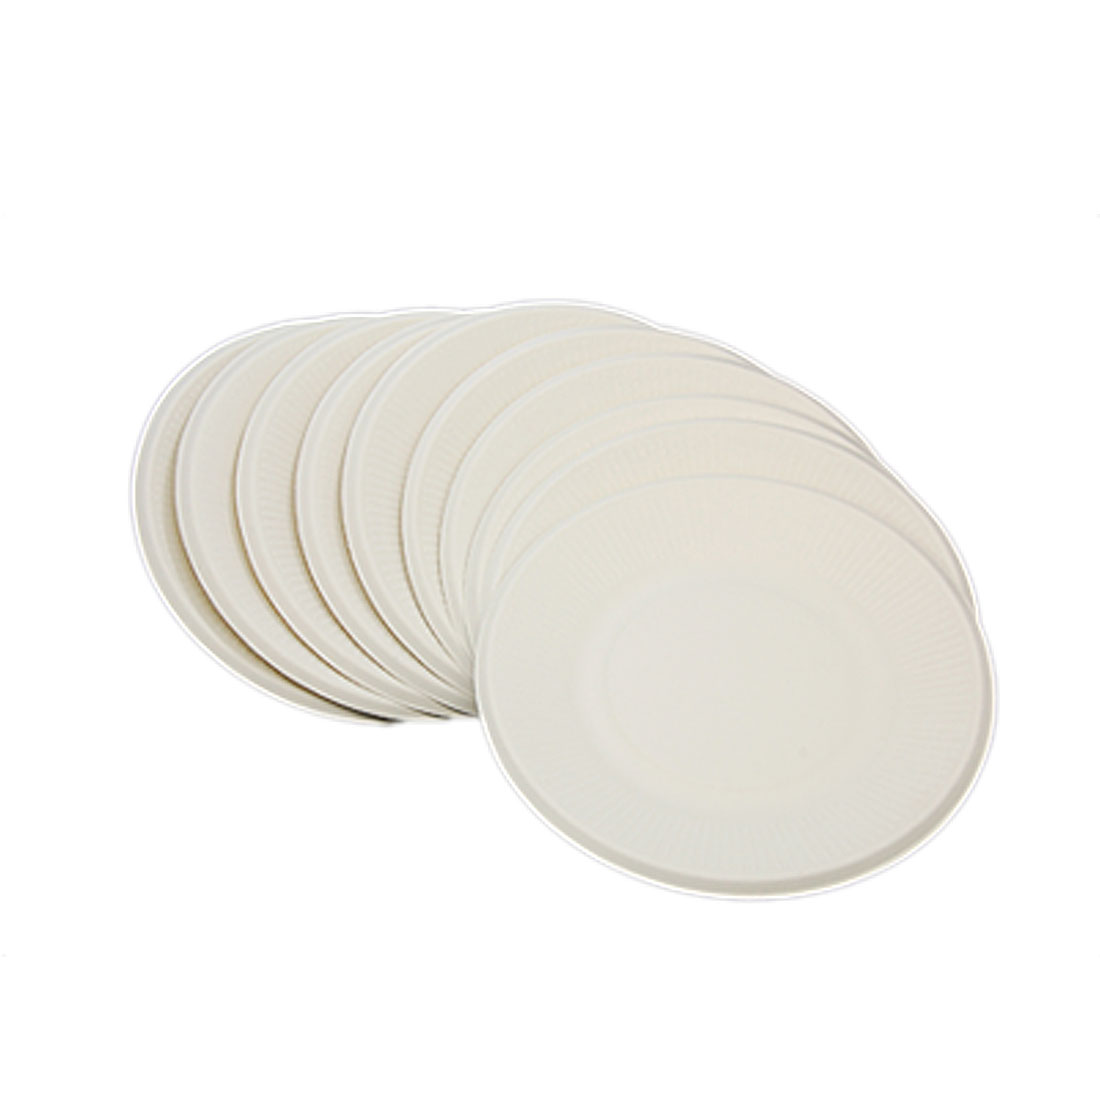 180mm Round Disposable Reed Pulp Snack Dishes 10 PCS